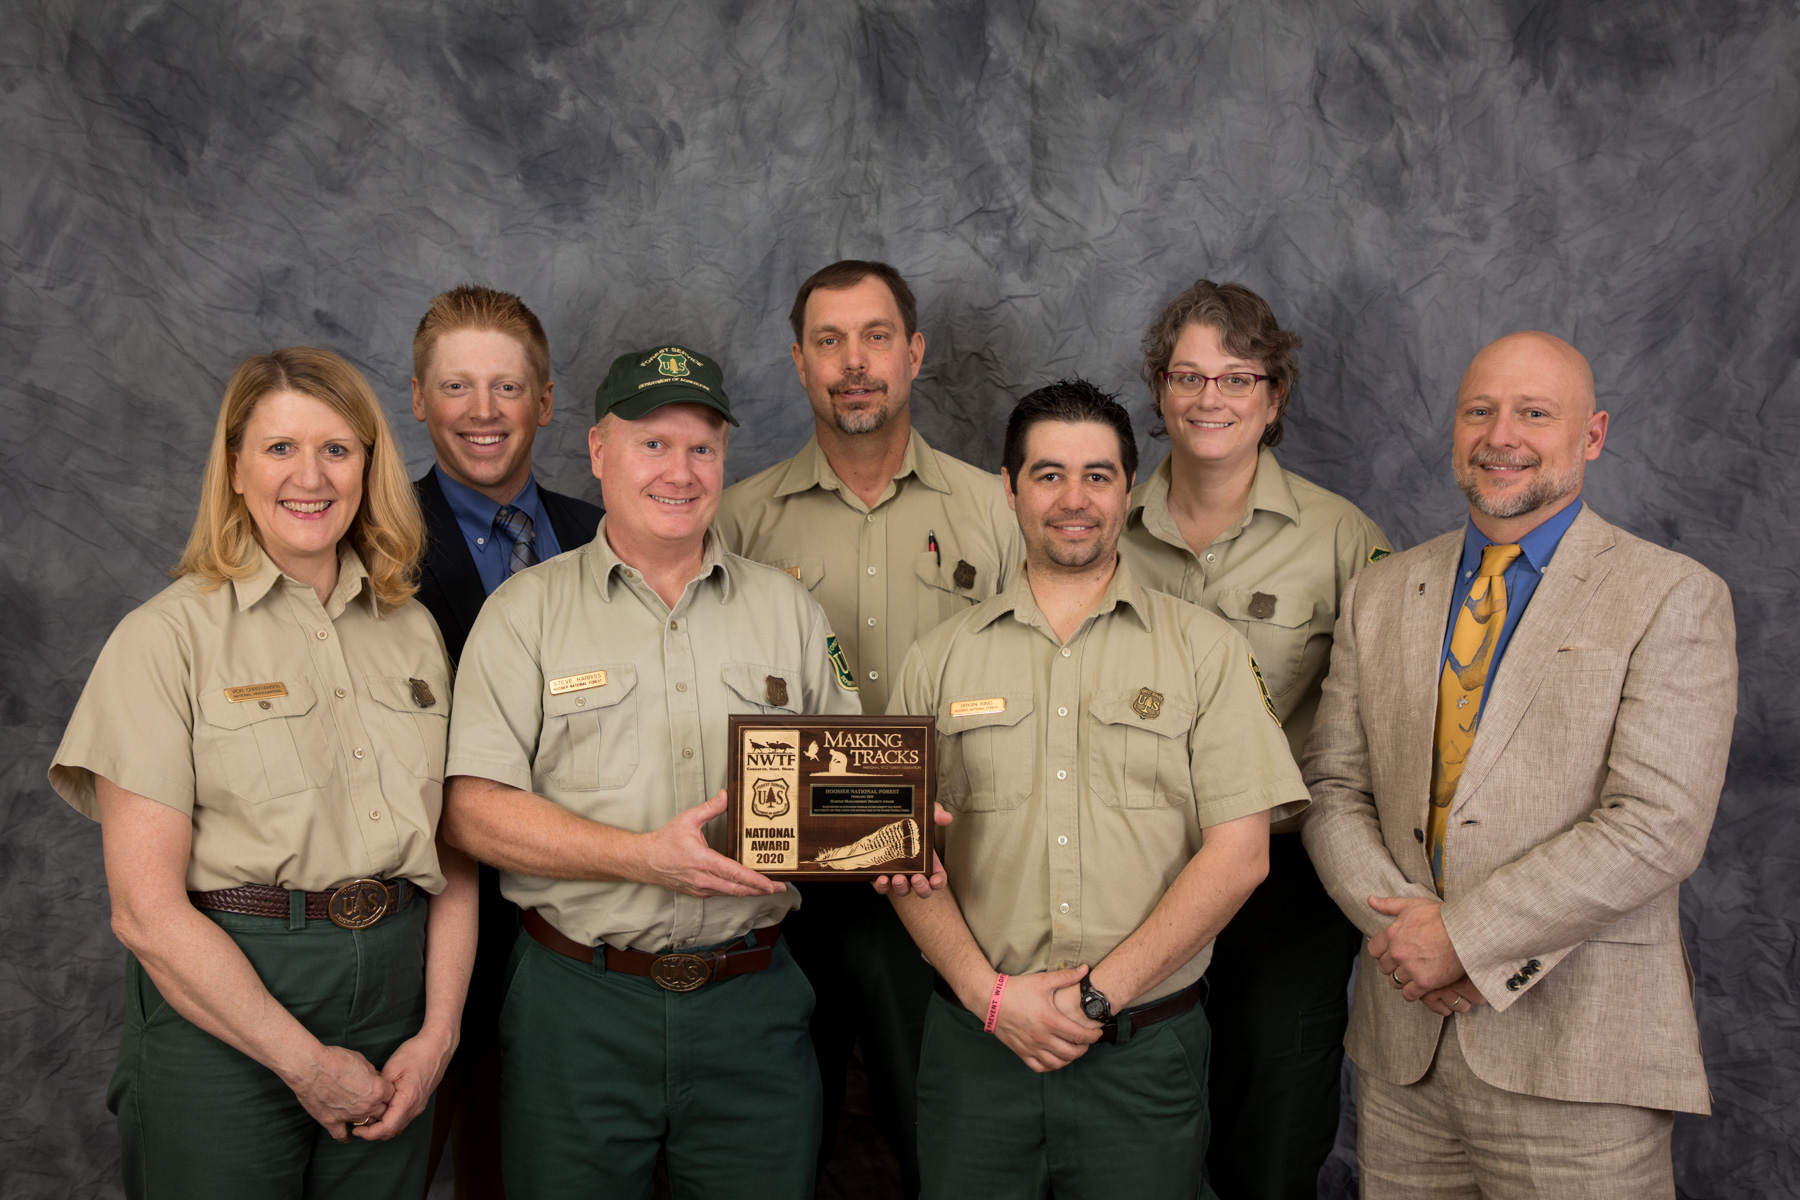 Thursday, february 18, 2010 10:12:03 pm(utc) rank: Nwtf And Forest Service Awards Recognize Conservation Achievements